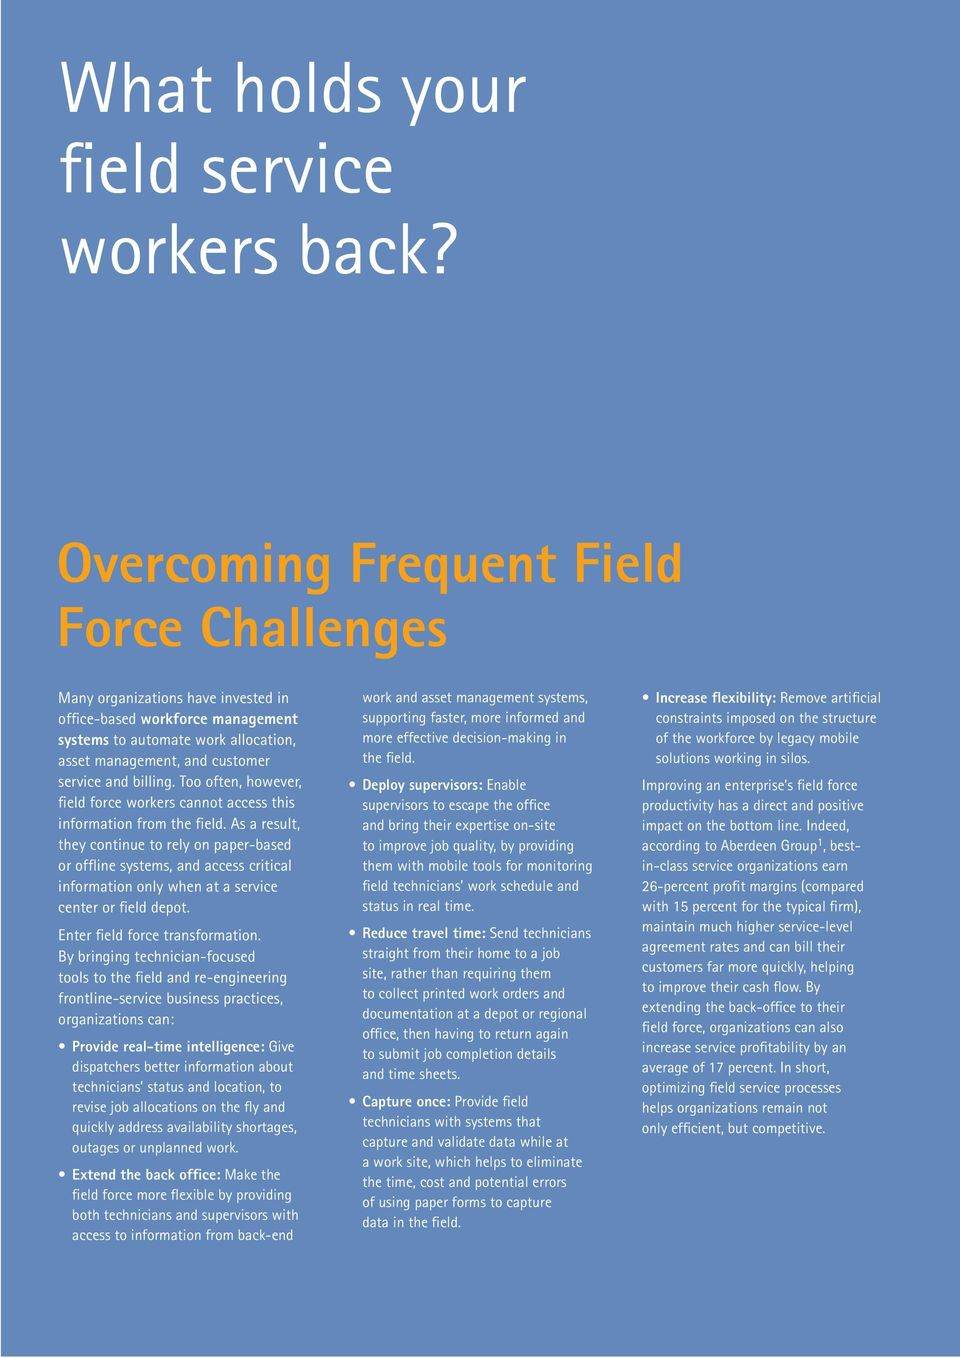 billing. Too often, however, field force workers cannot access this information from the field.